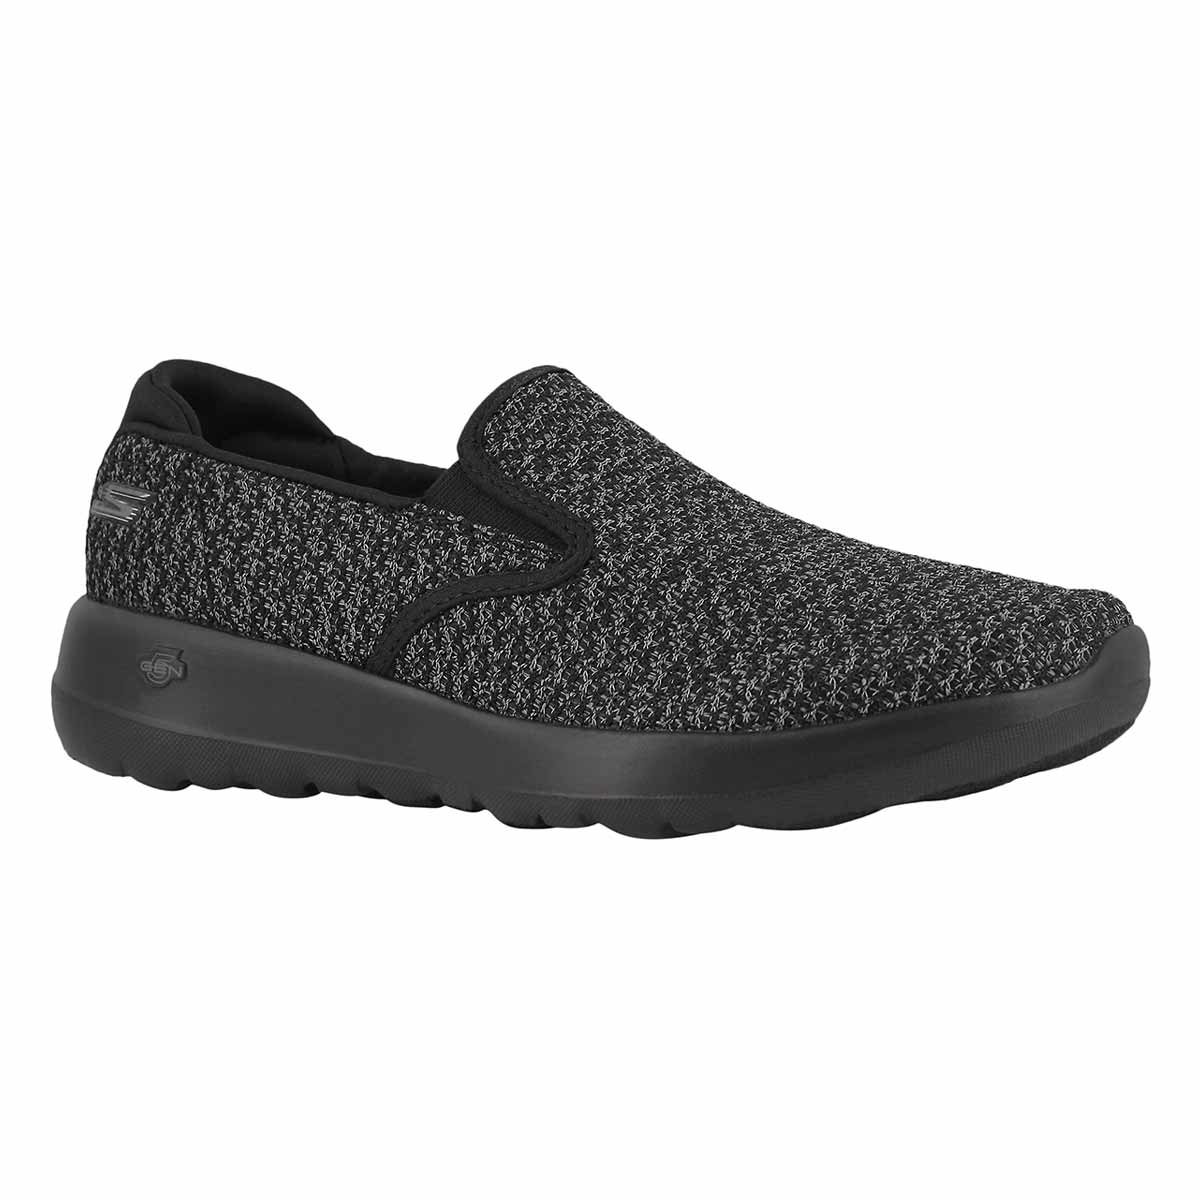 Lds GOwalk Joy Seek blk/gry slip on shoe